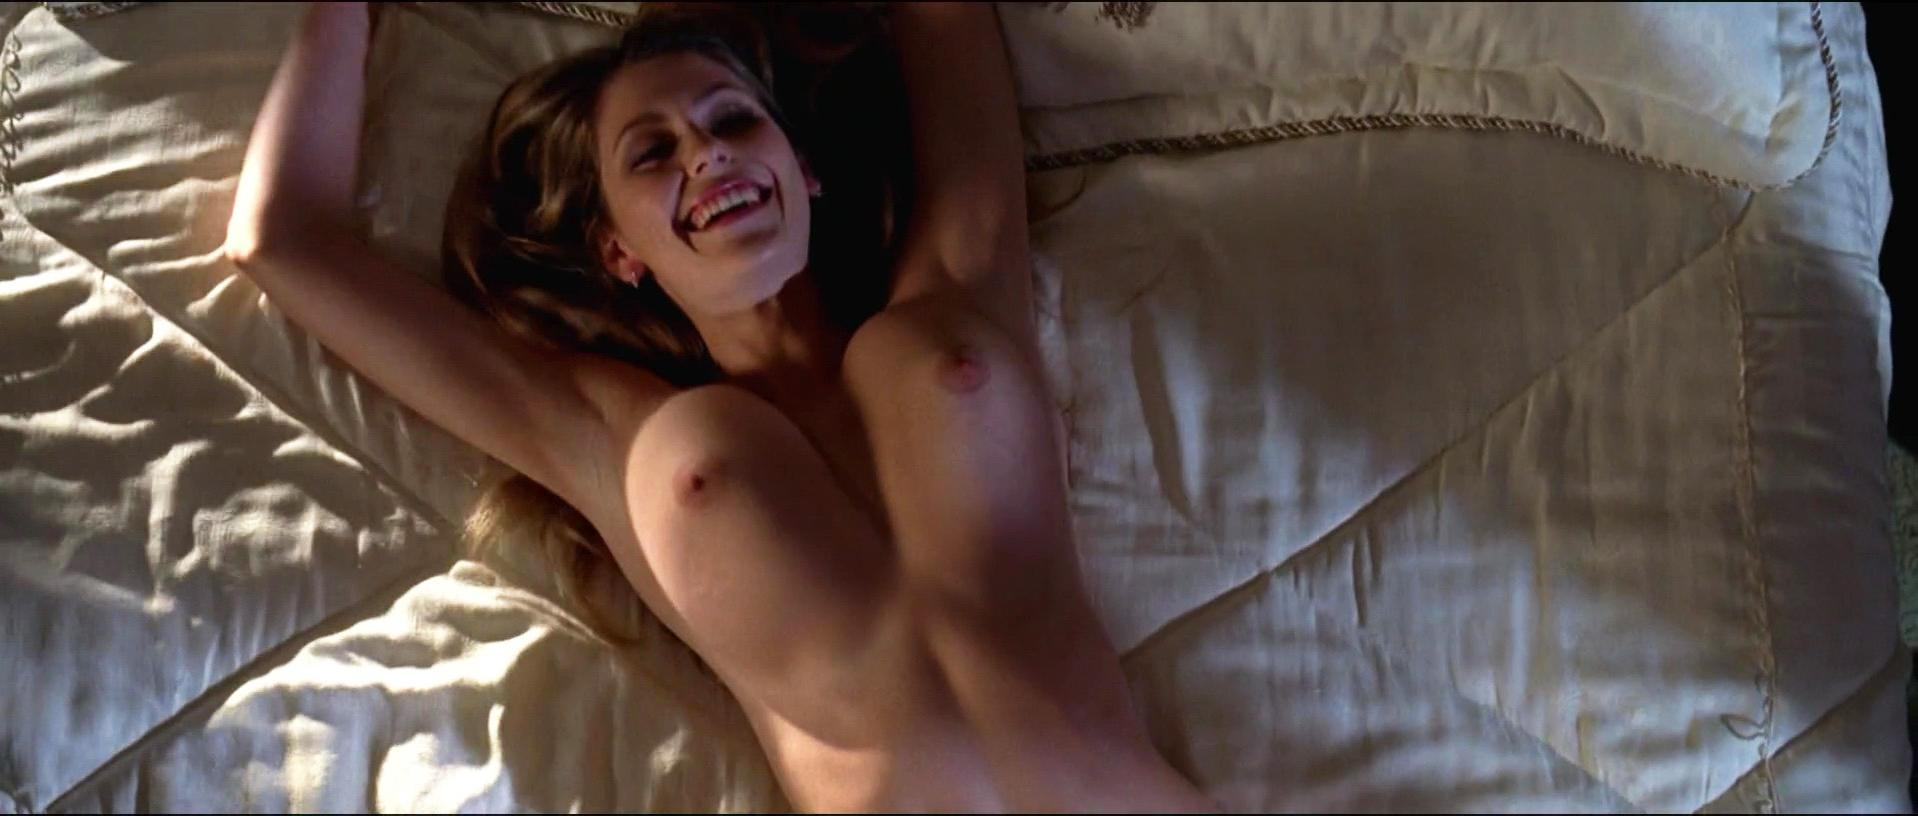 Diora Baird nude, Rachel Sterling nude - Wedding Crashers (2005)